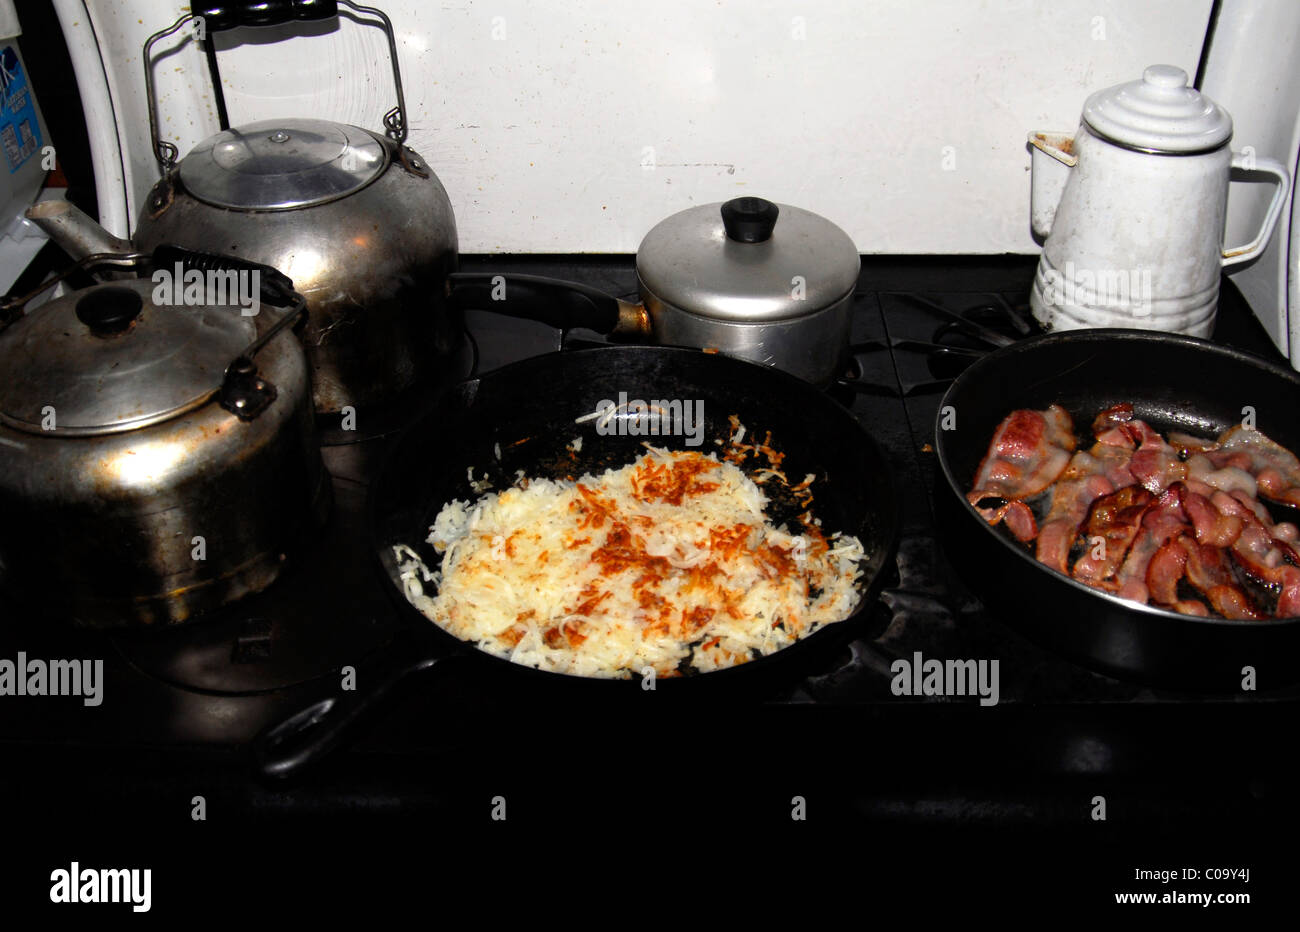 Breakfast food cooking on an antique old cabin stove - Stock Image